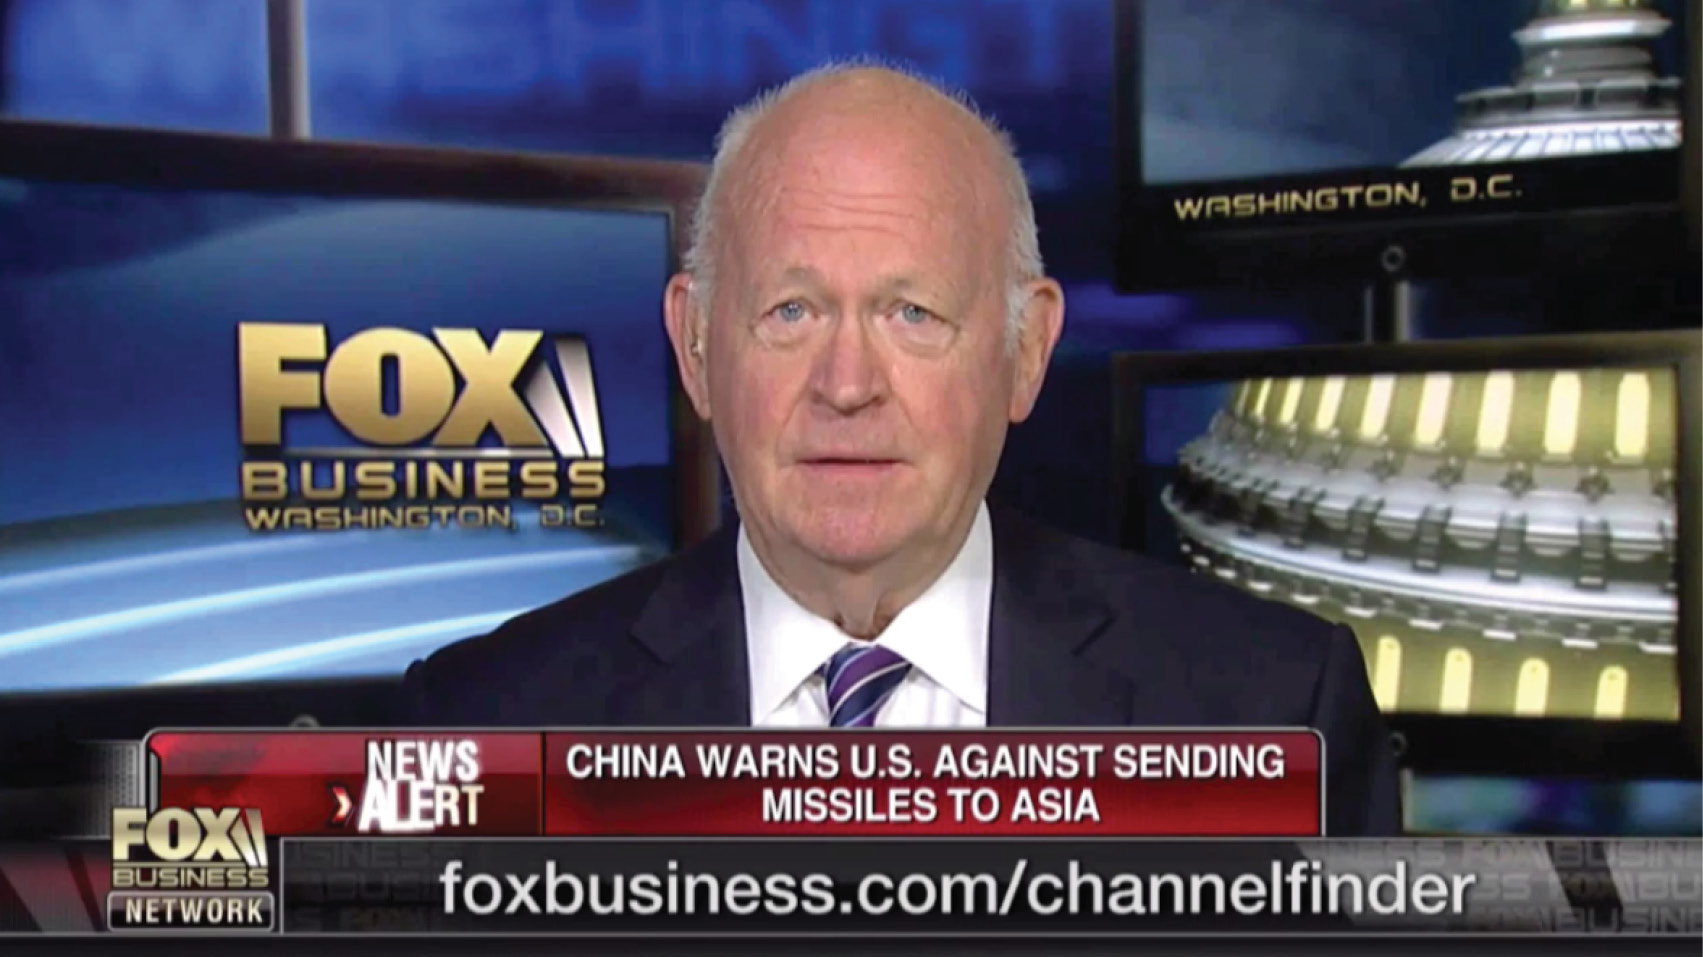 Michael Pillsbury discusses China's warning about the U.S. sending missiles to Asia.